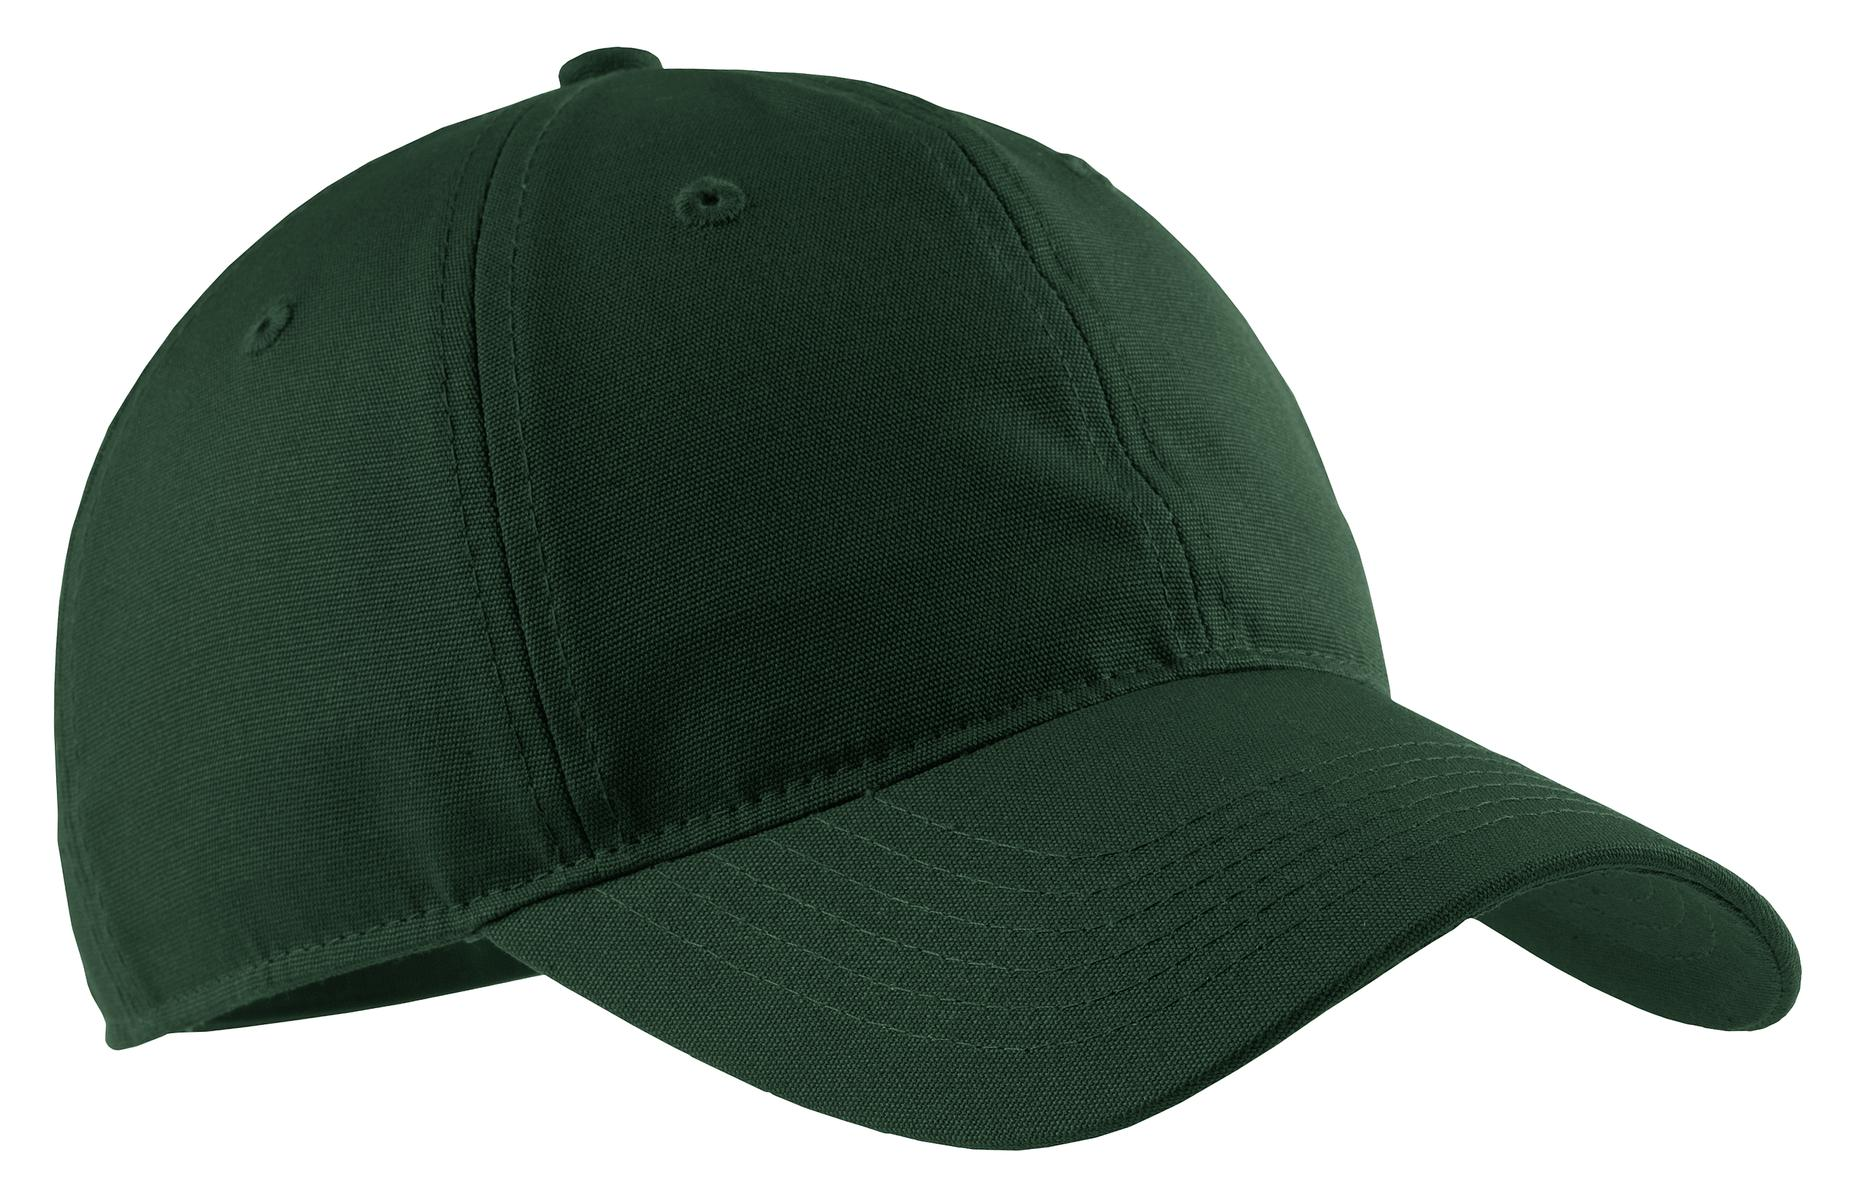 Port & Company® - Soft Brushed Canvas Cap.-Port & Company